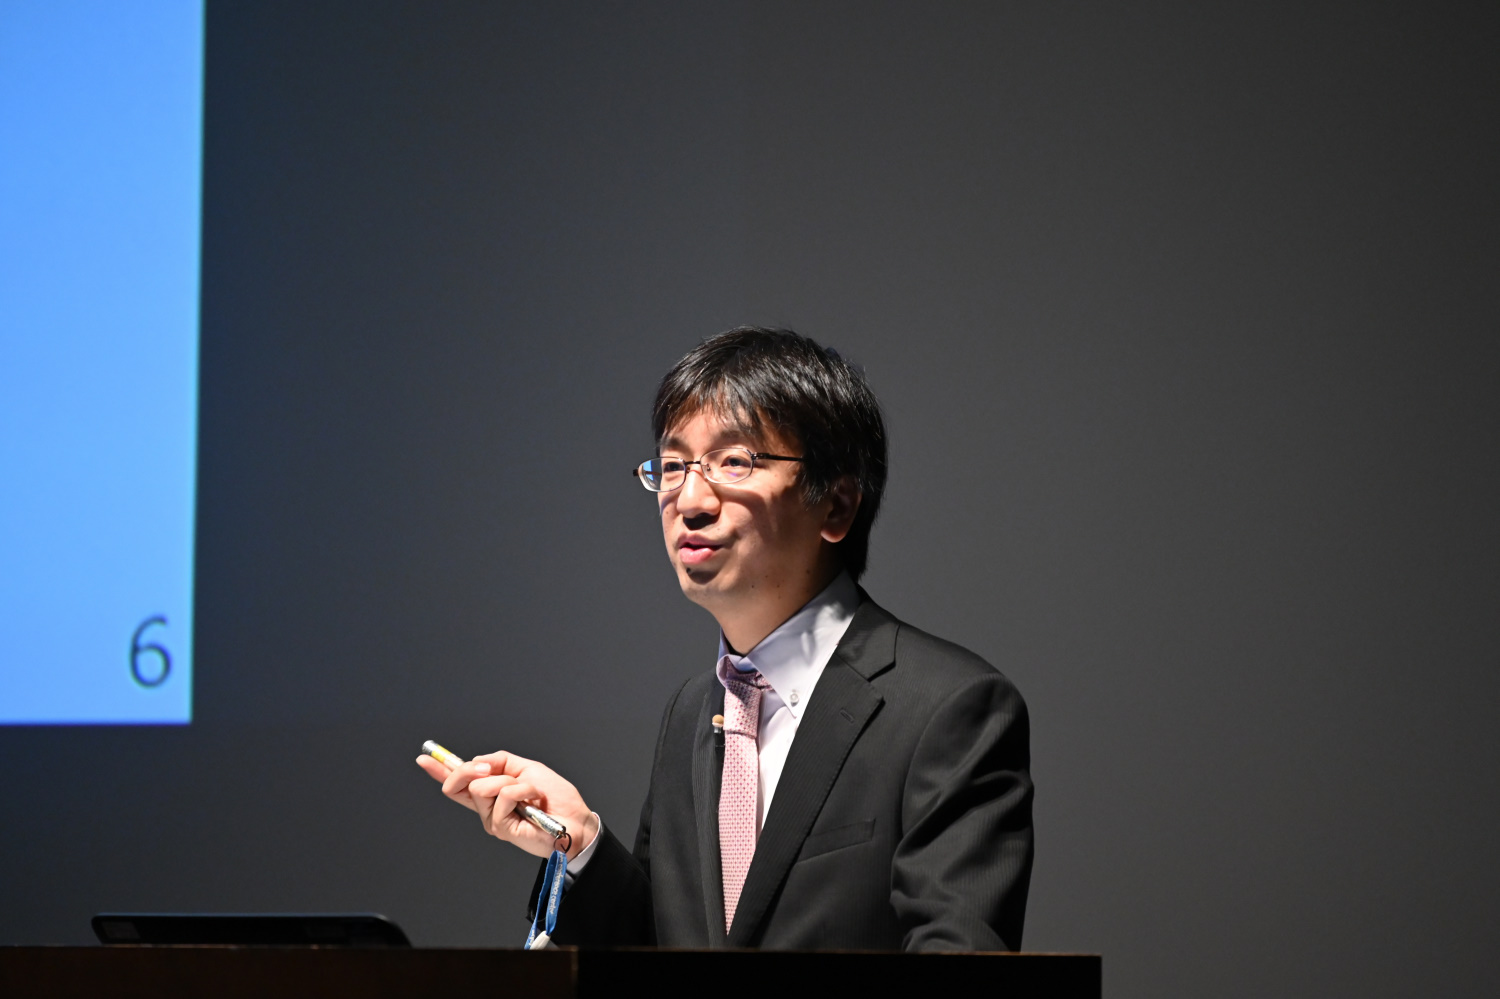 http://www.ssug.jp/conference/conference2019-01.jpg